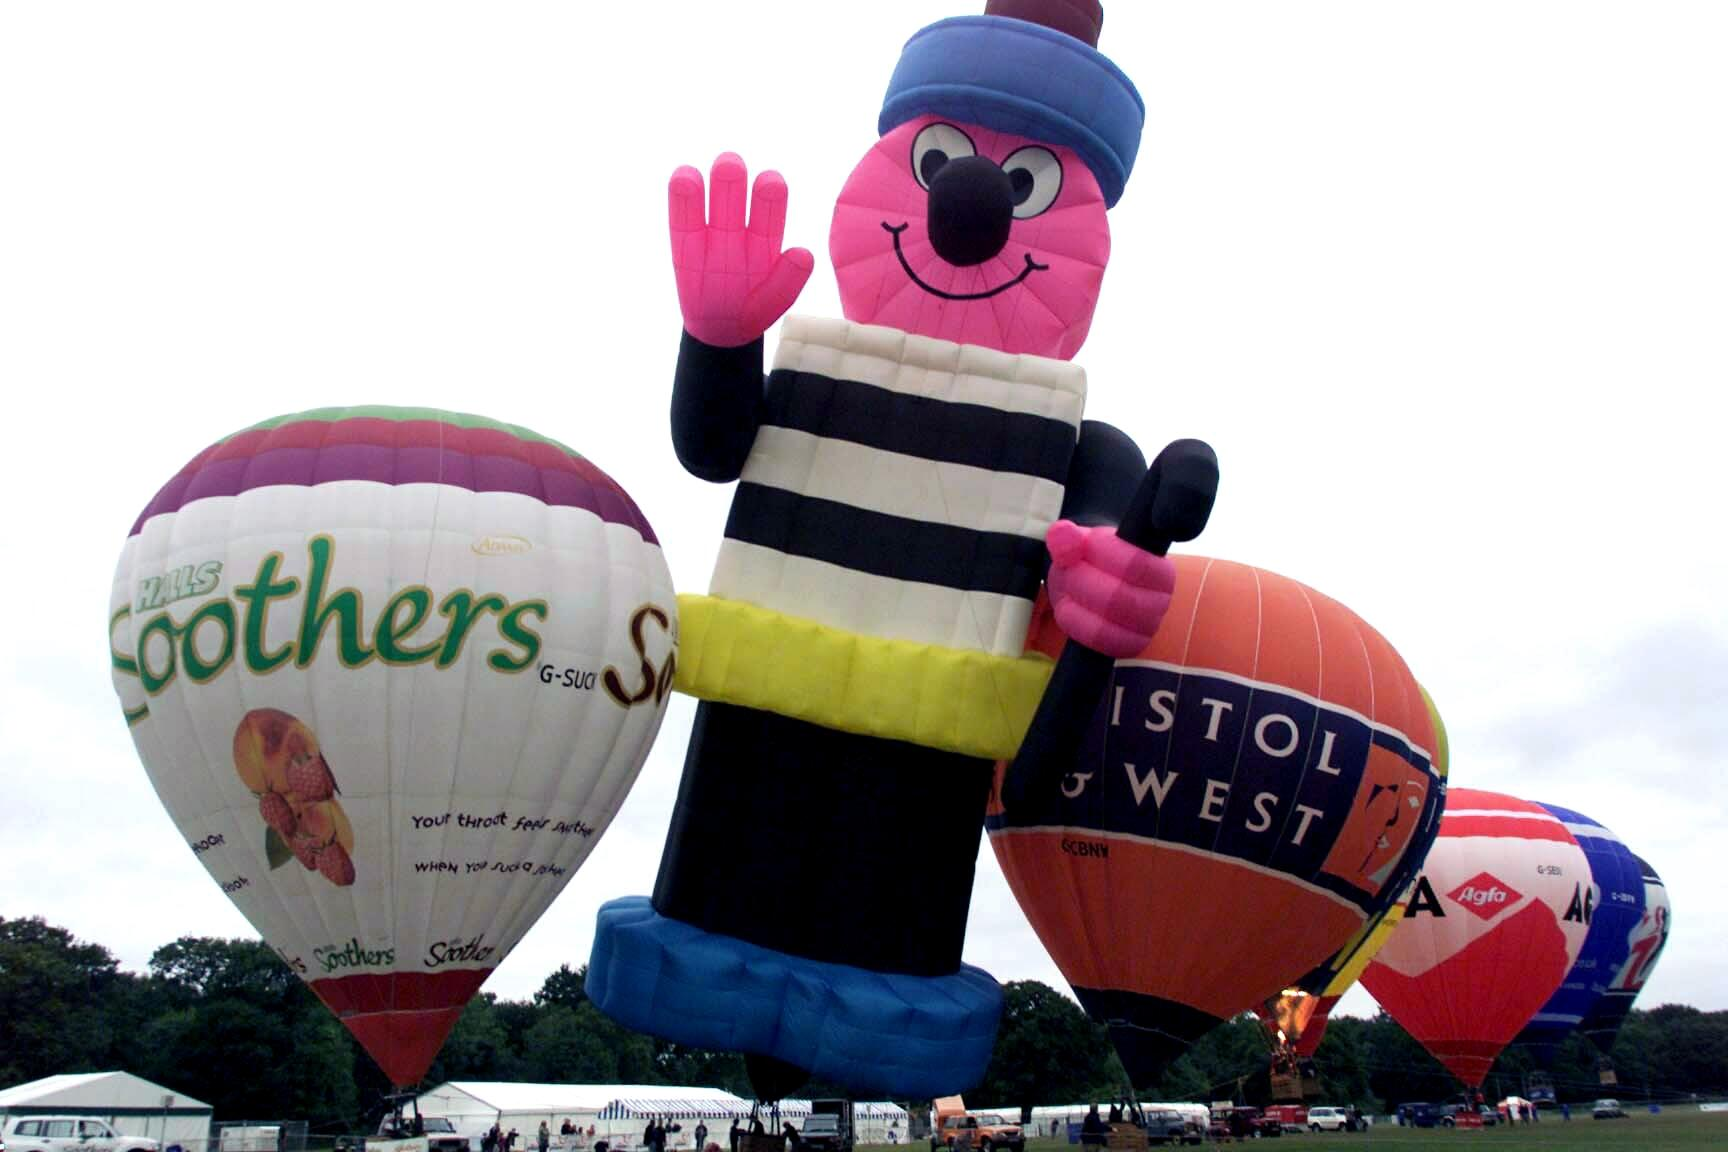 Southampton's Balloon and Flower Festival which took place on The Common